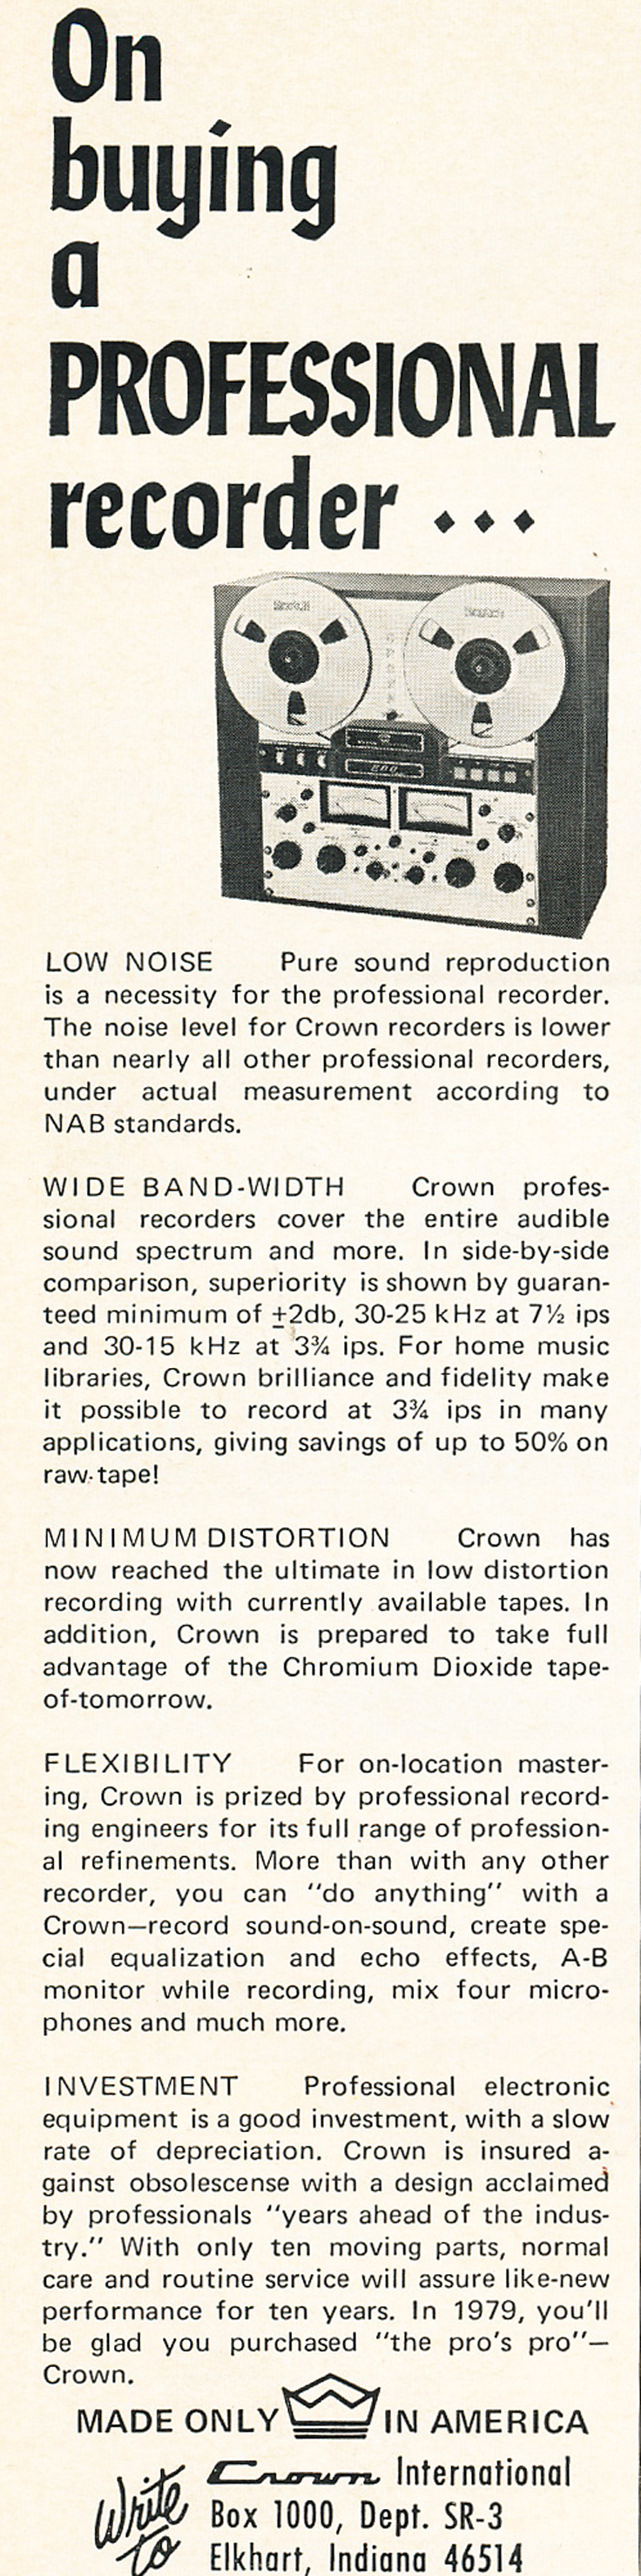 1969 Crown reel to reel tape recorder ad in the Reel2ReelTexas.com vintage recording collection